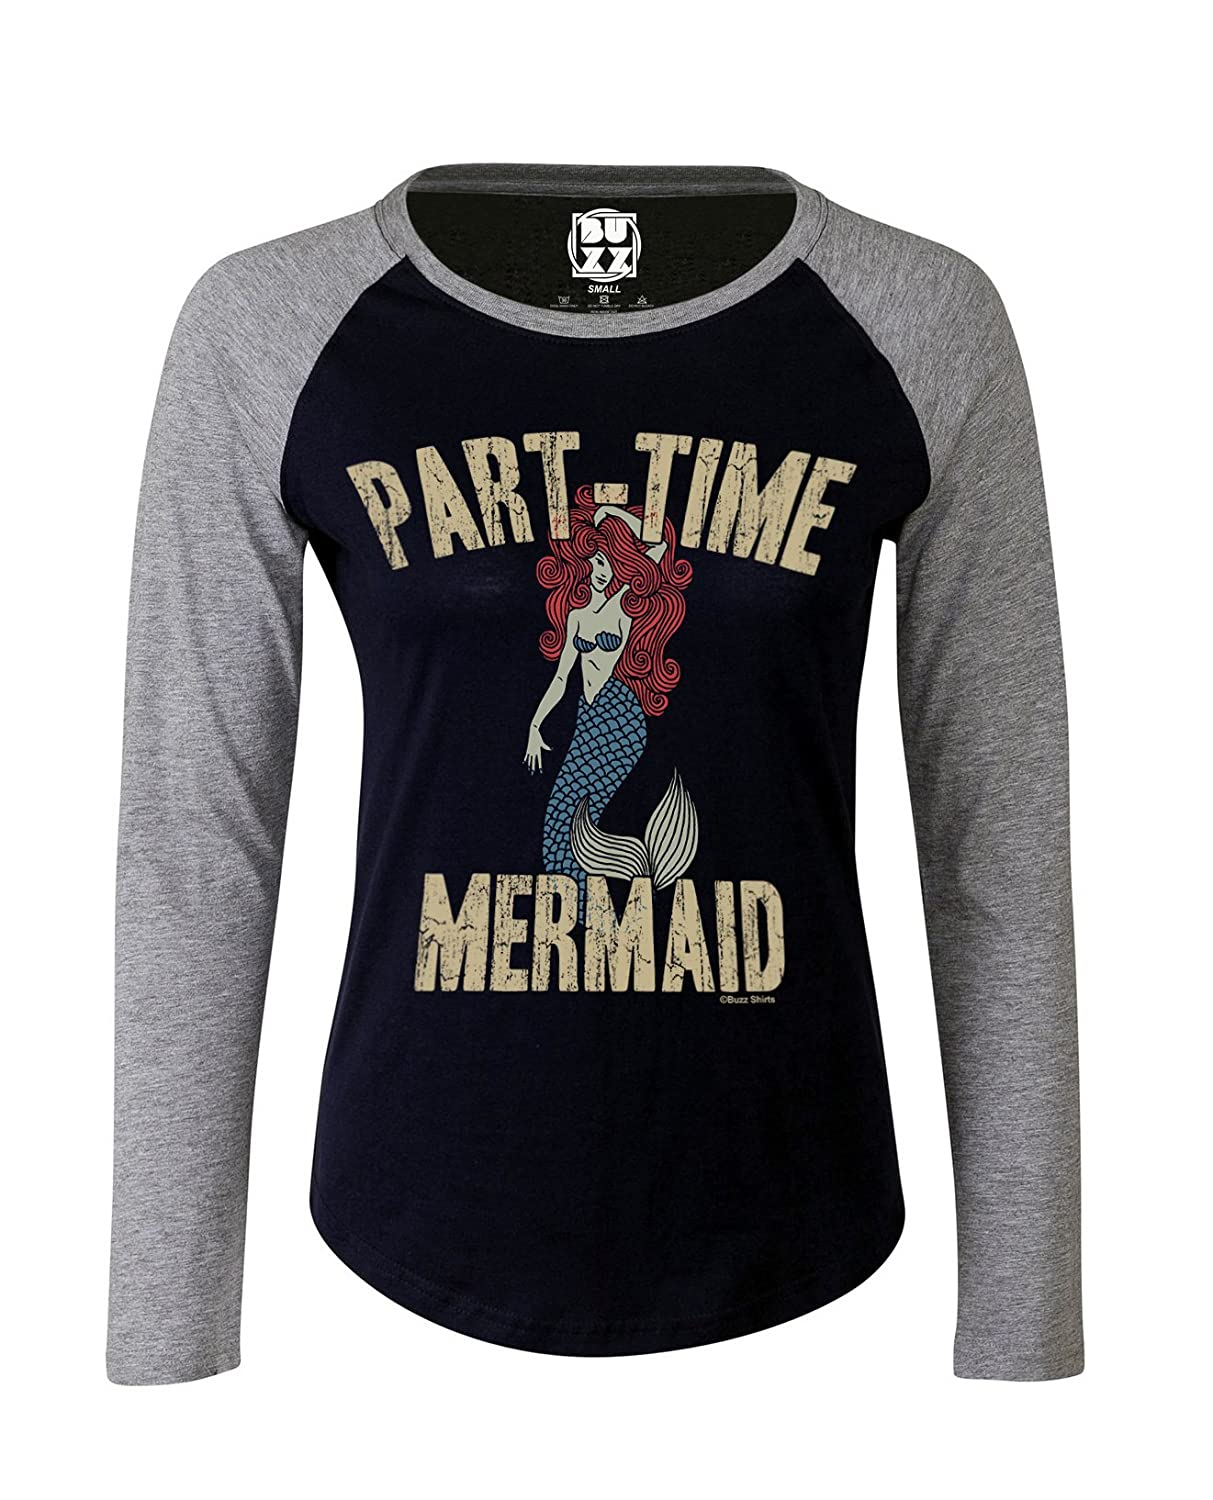 Ladies Raglan Baseball T Shirt Part Time Mermaid graphic Womens Fashion Buzz Shirts